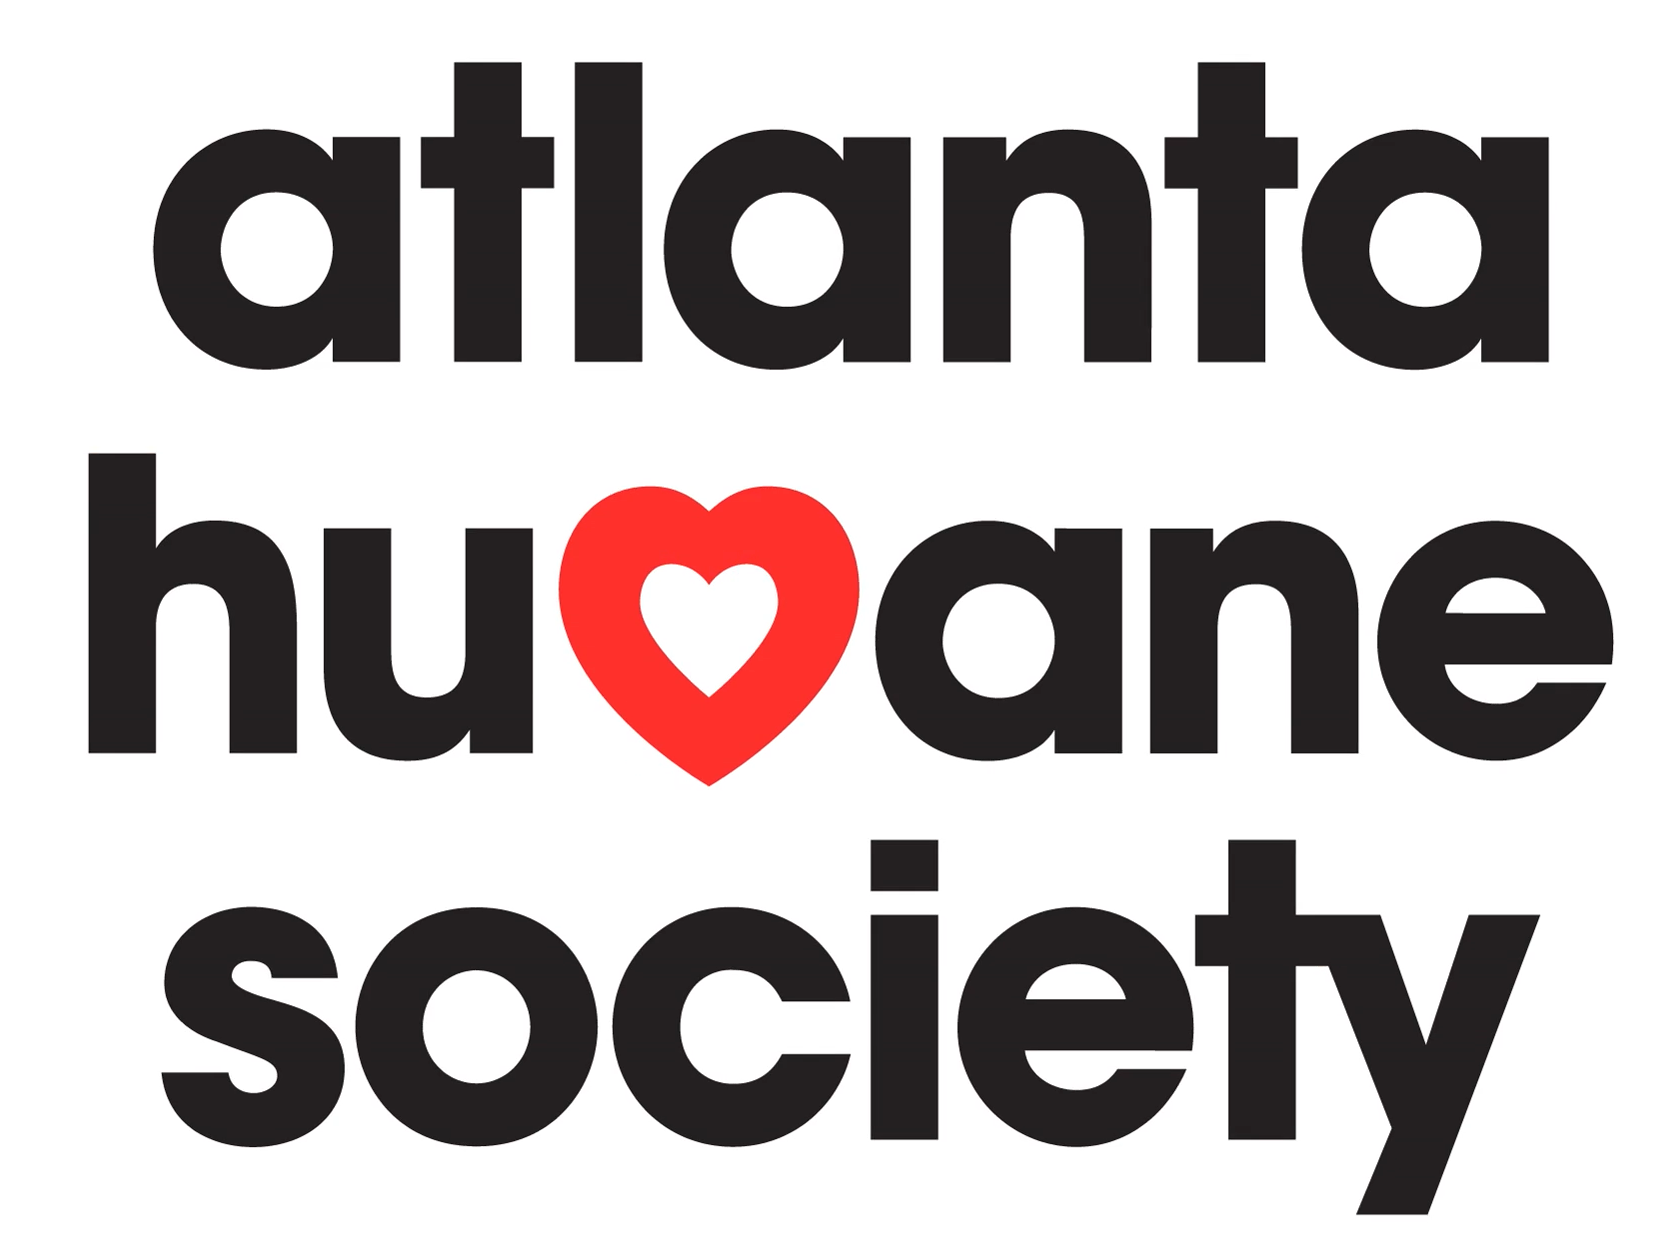 New Logo and Identity for Atlanta Humane Society by Matchstic